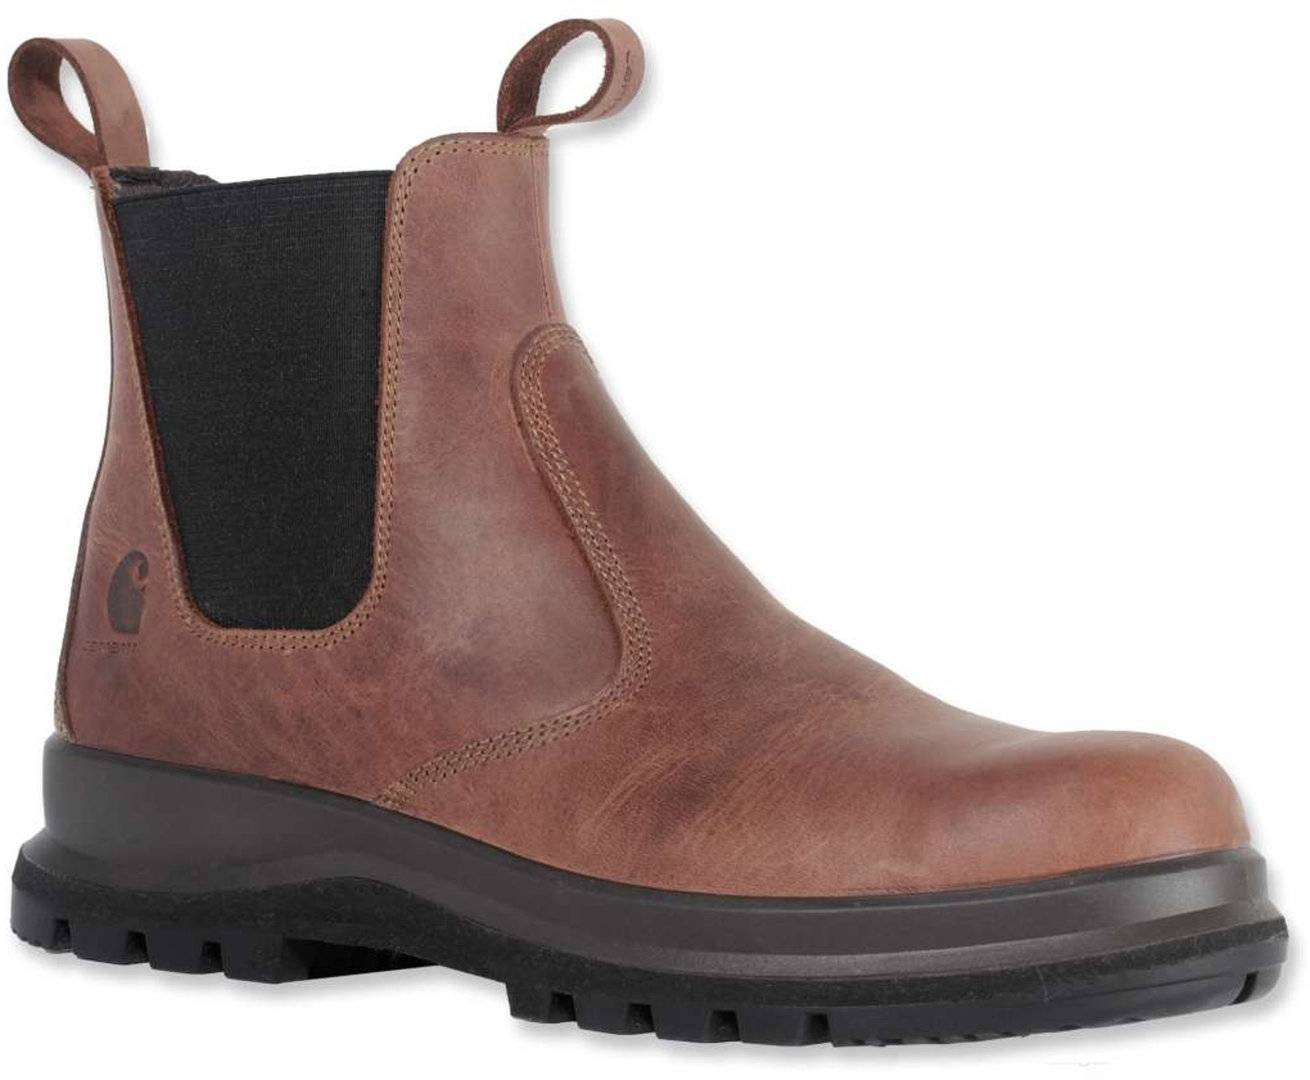 Carhartt Chelsea Rugged Flex S3 Boots  - Size: 45